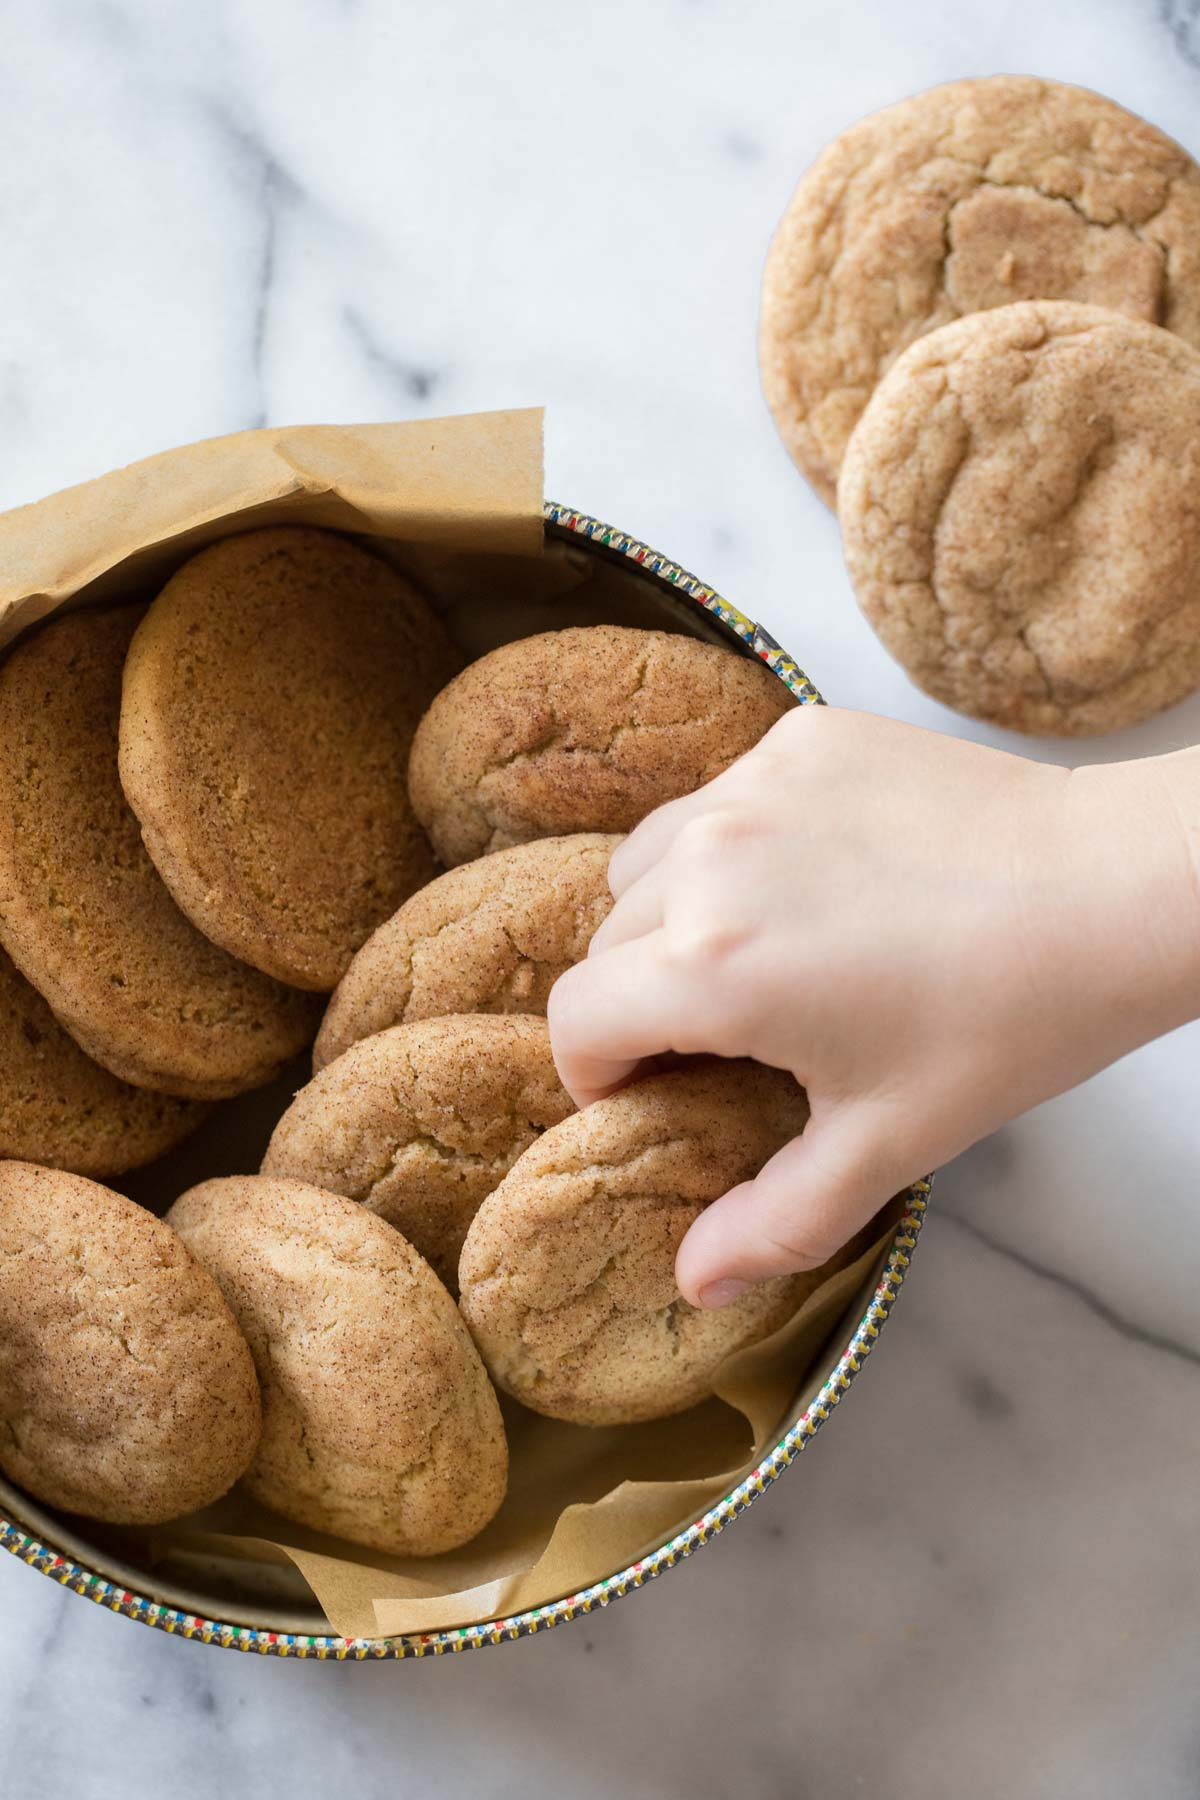 A child's hand reaching out to take a Super Soft Snickerdoodle cookie in a cookie tin on a white background.